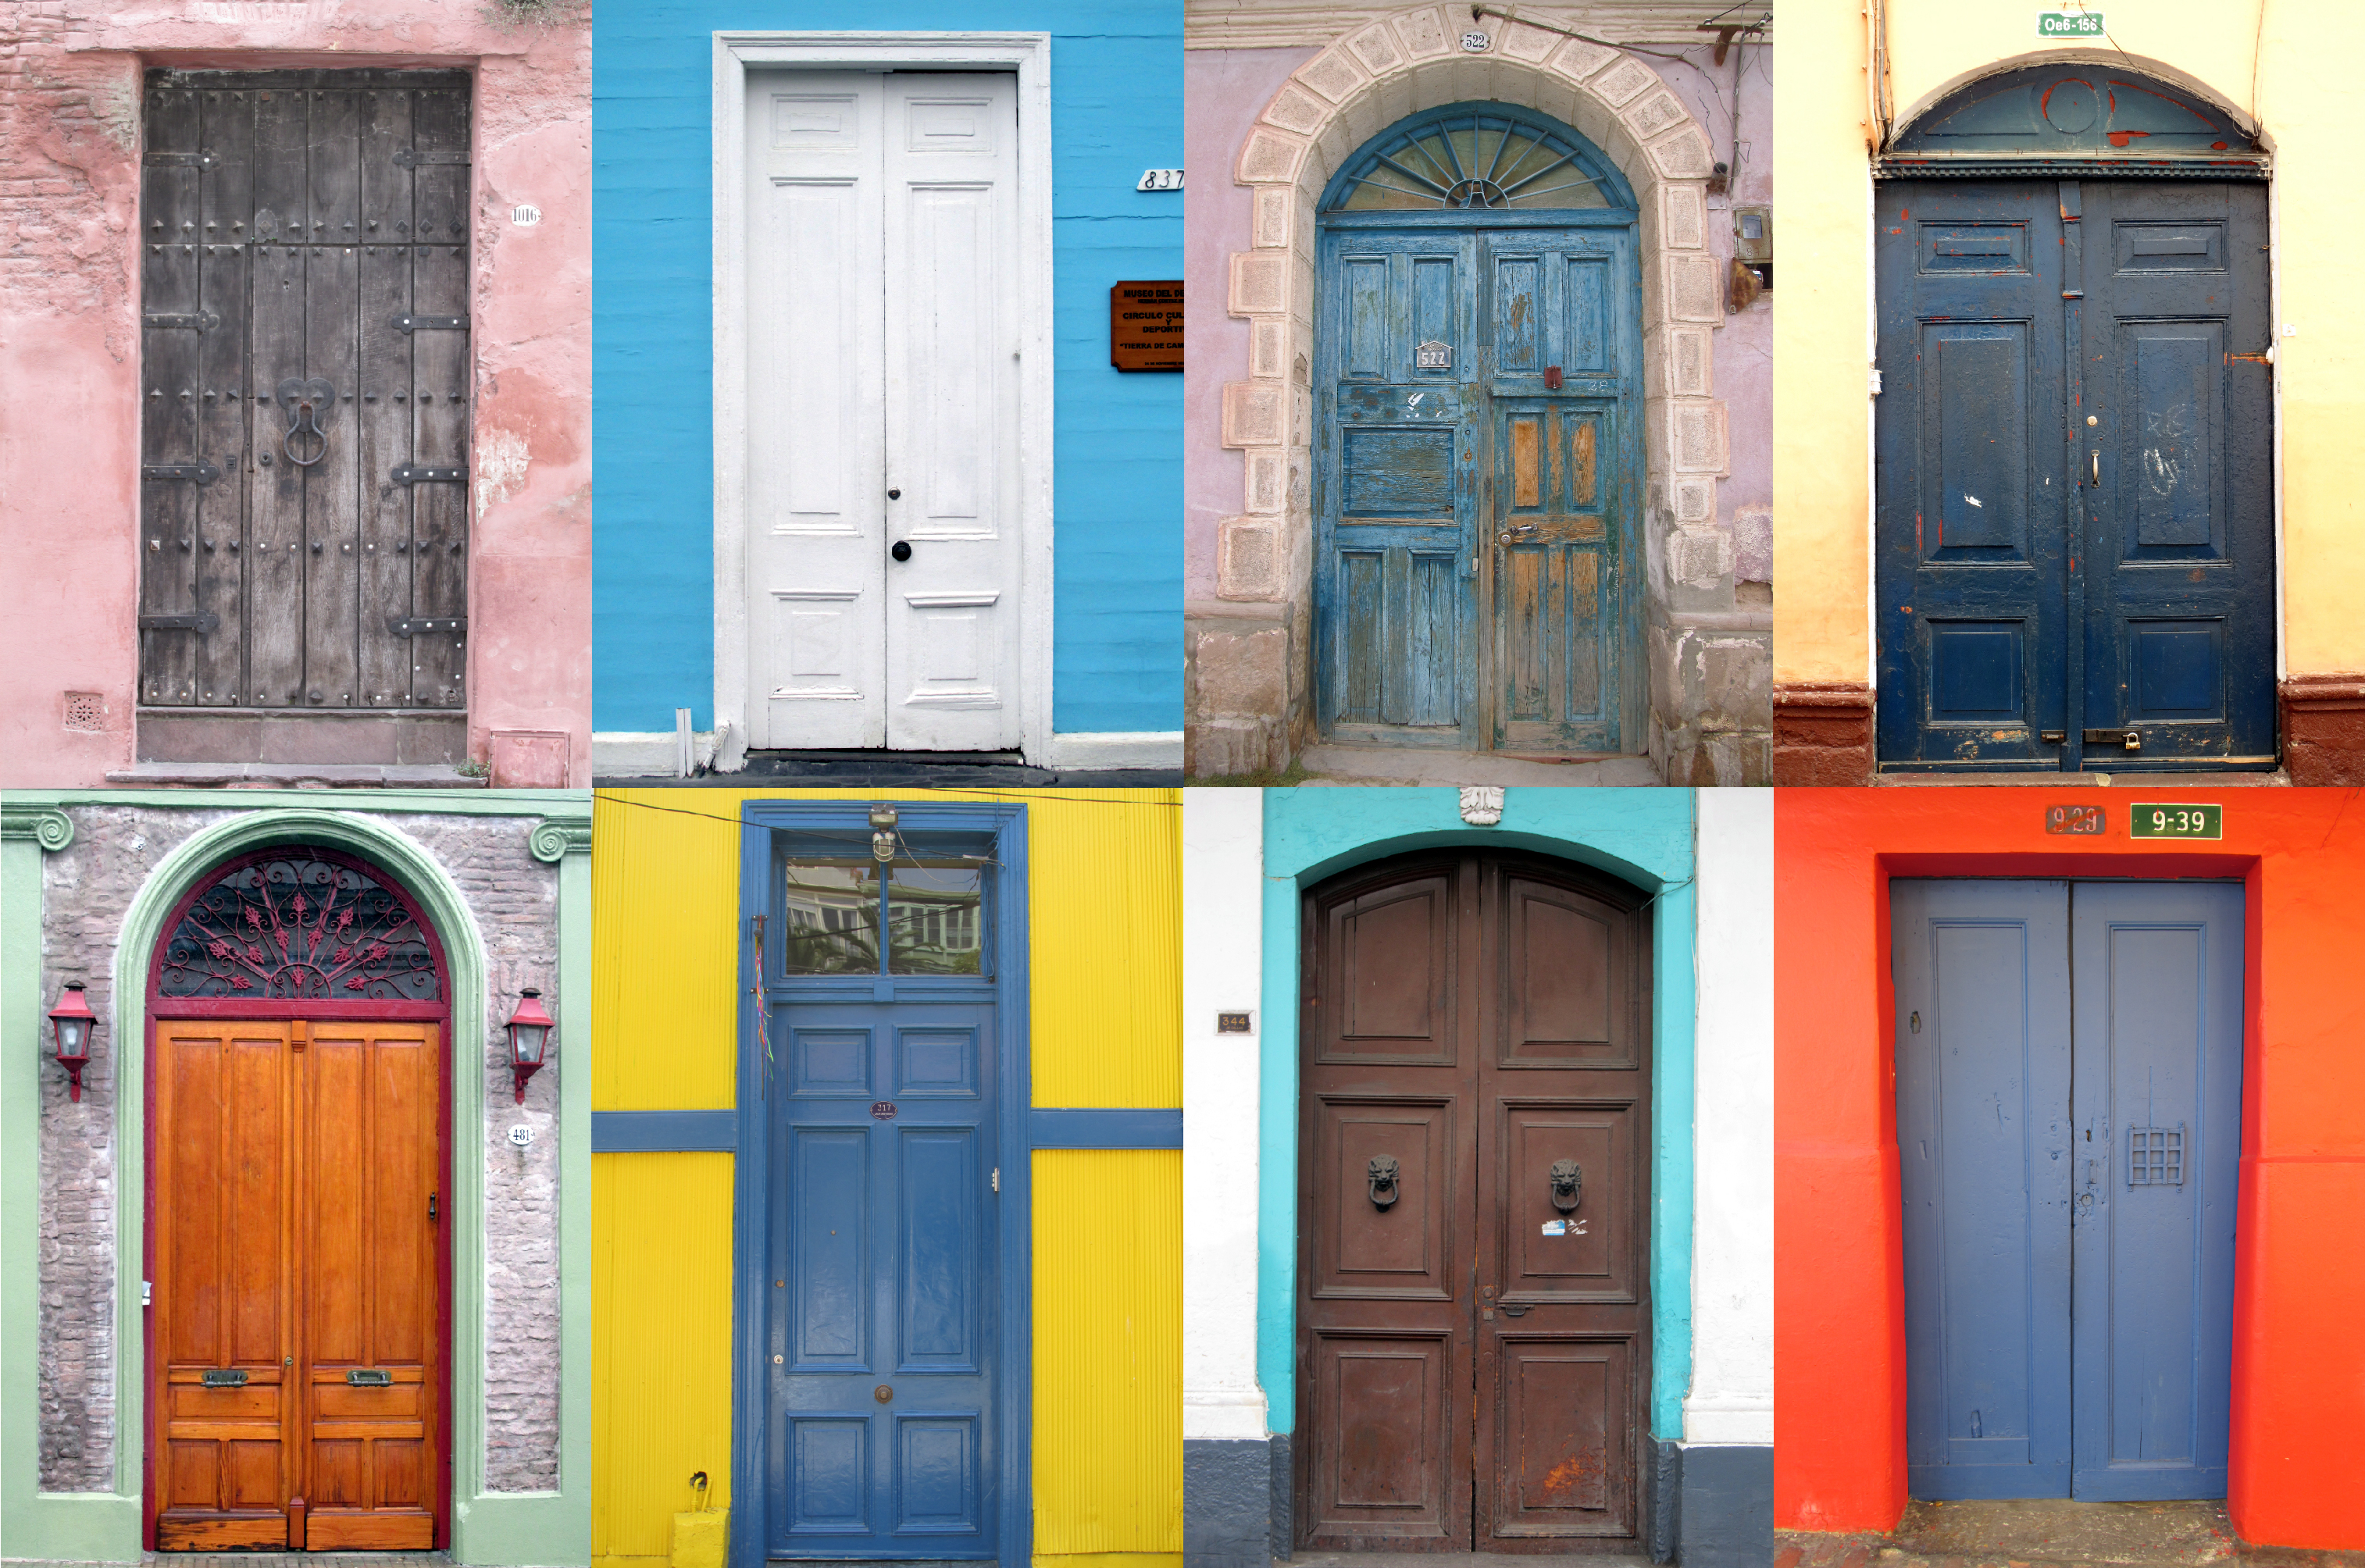 BOOKS HOME JAMES M. WISE SOUTH AMERICA PLACES TO VISIT YANIRA K. WISE & CAPTIVATING DOORS OF SOUTH AMERICA \u2013 South America to the World